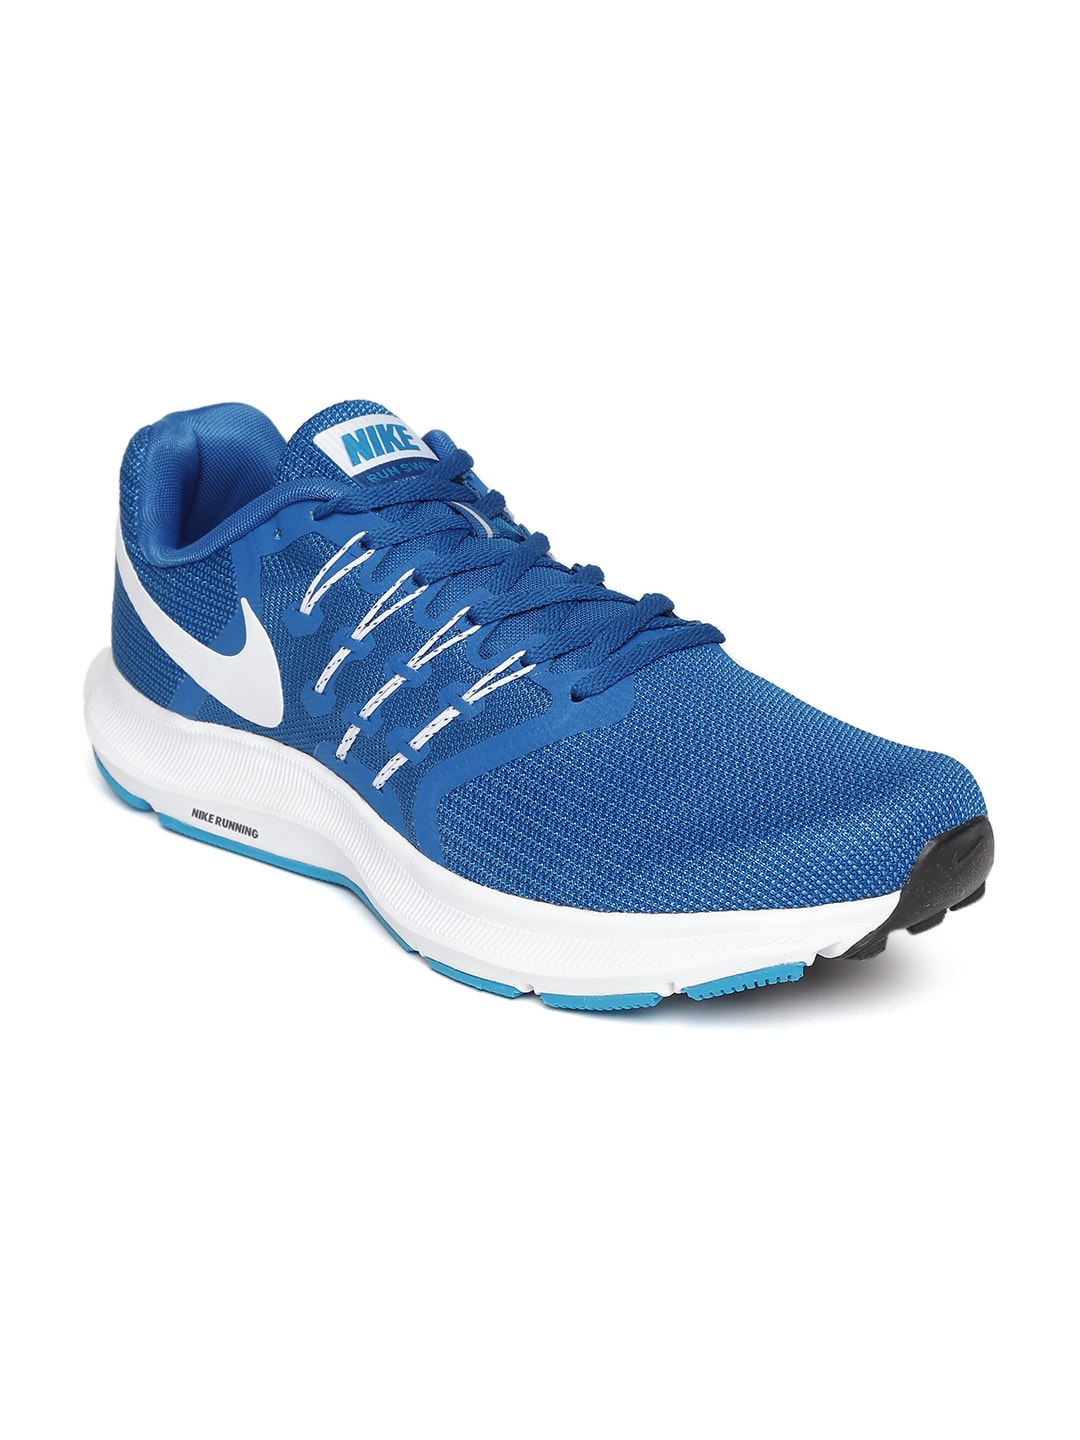 f3123881ac5c4b Nike Sport Shoe - Buy Nike Sport Shoes At Best Price Online